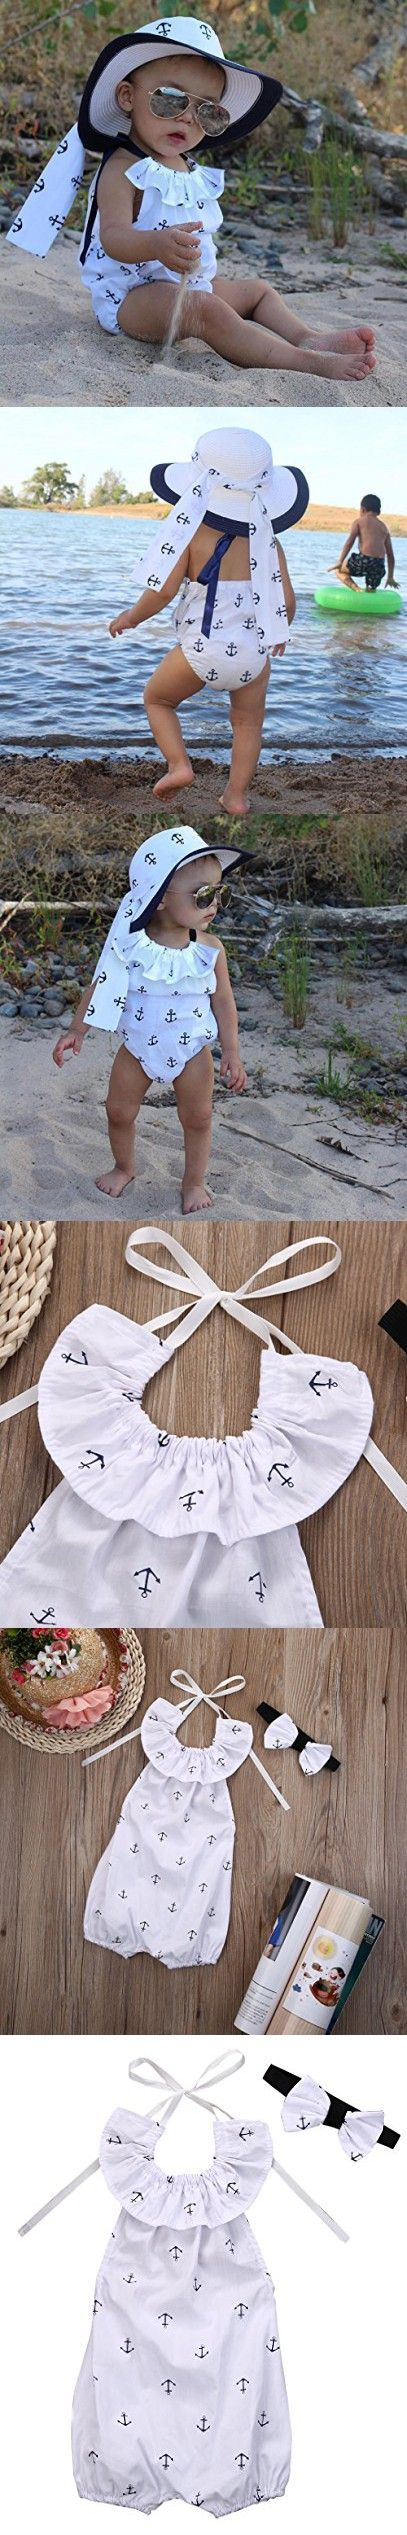 Infant Baby Girl Romper Anchor Bodysuit Jumpsuit Outfits Sunsuit Ruffles Clothes (0-6 Months, White)